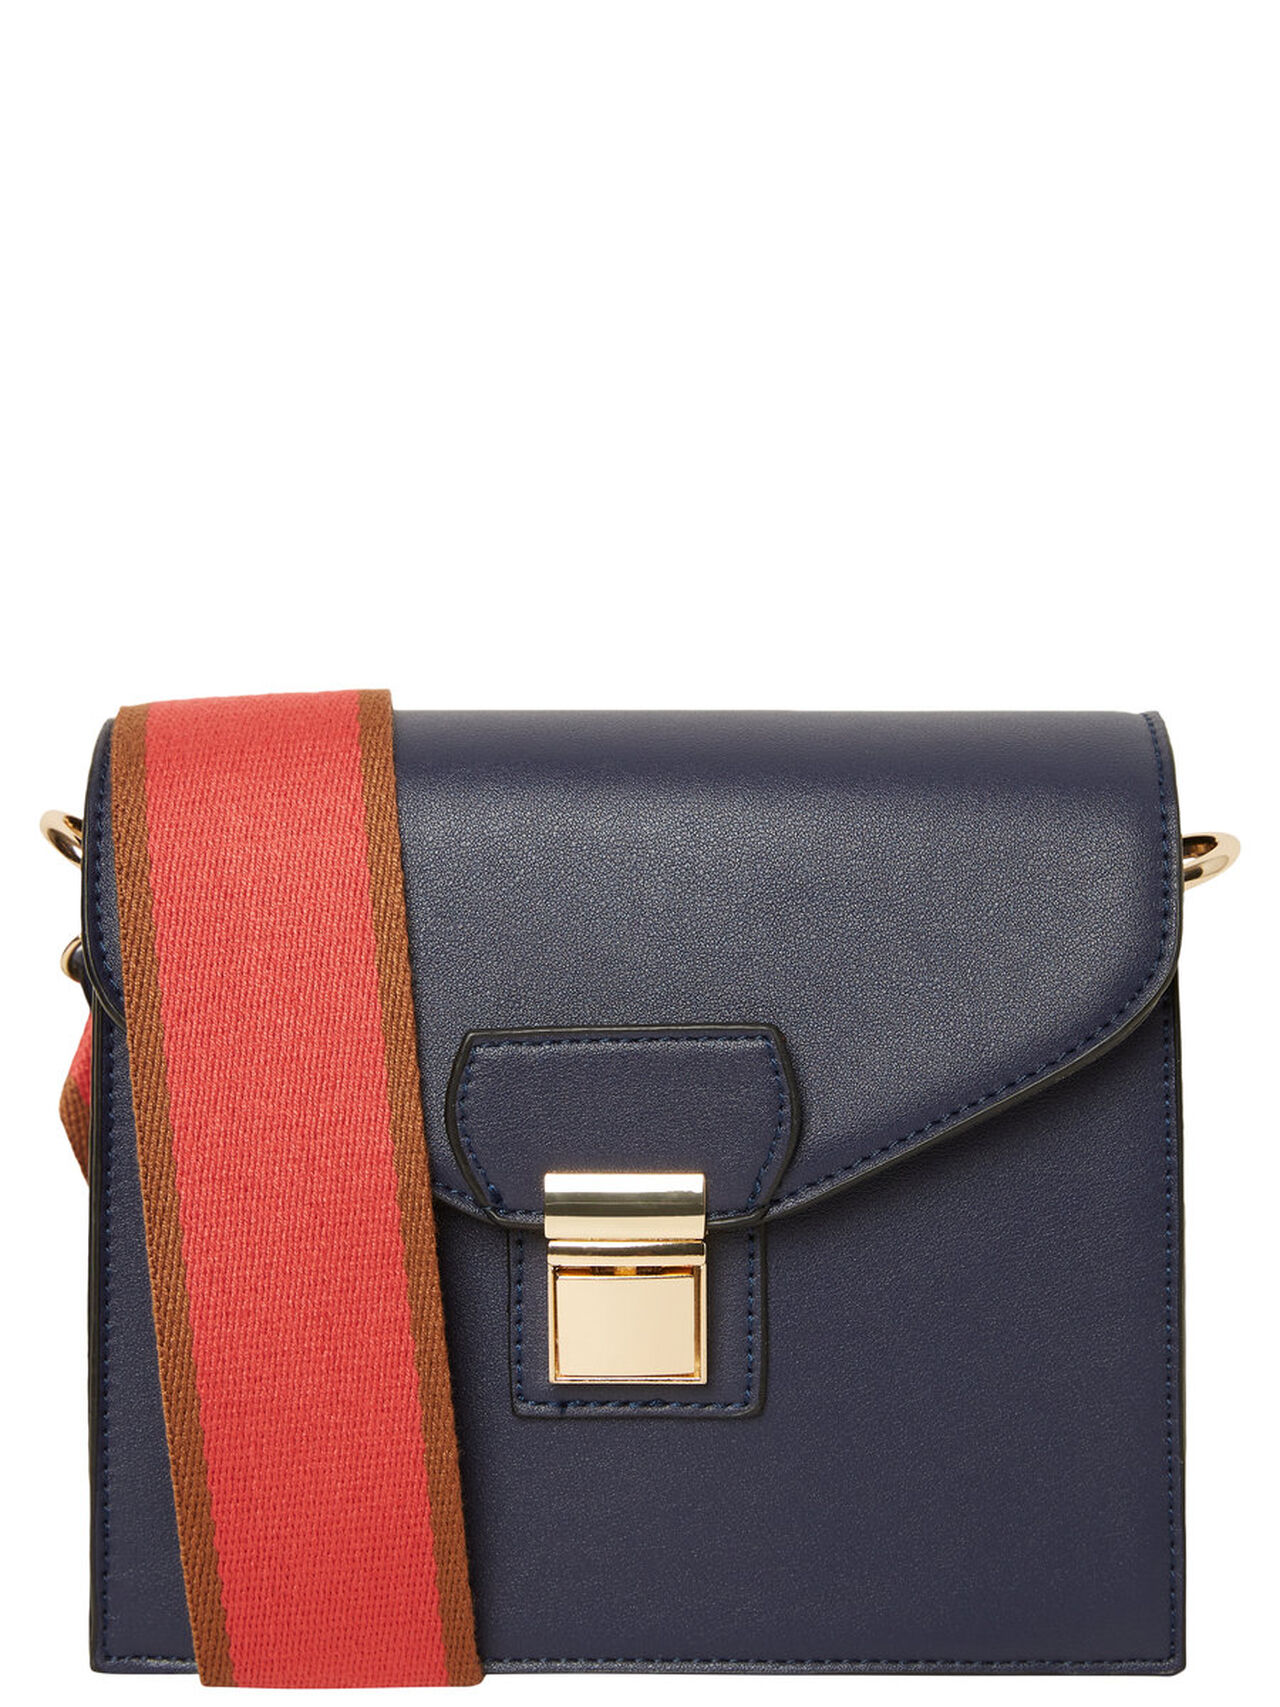 VERO MODA Small Crossbody Bag Women Blue